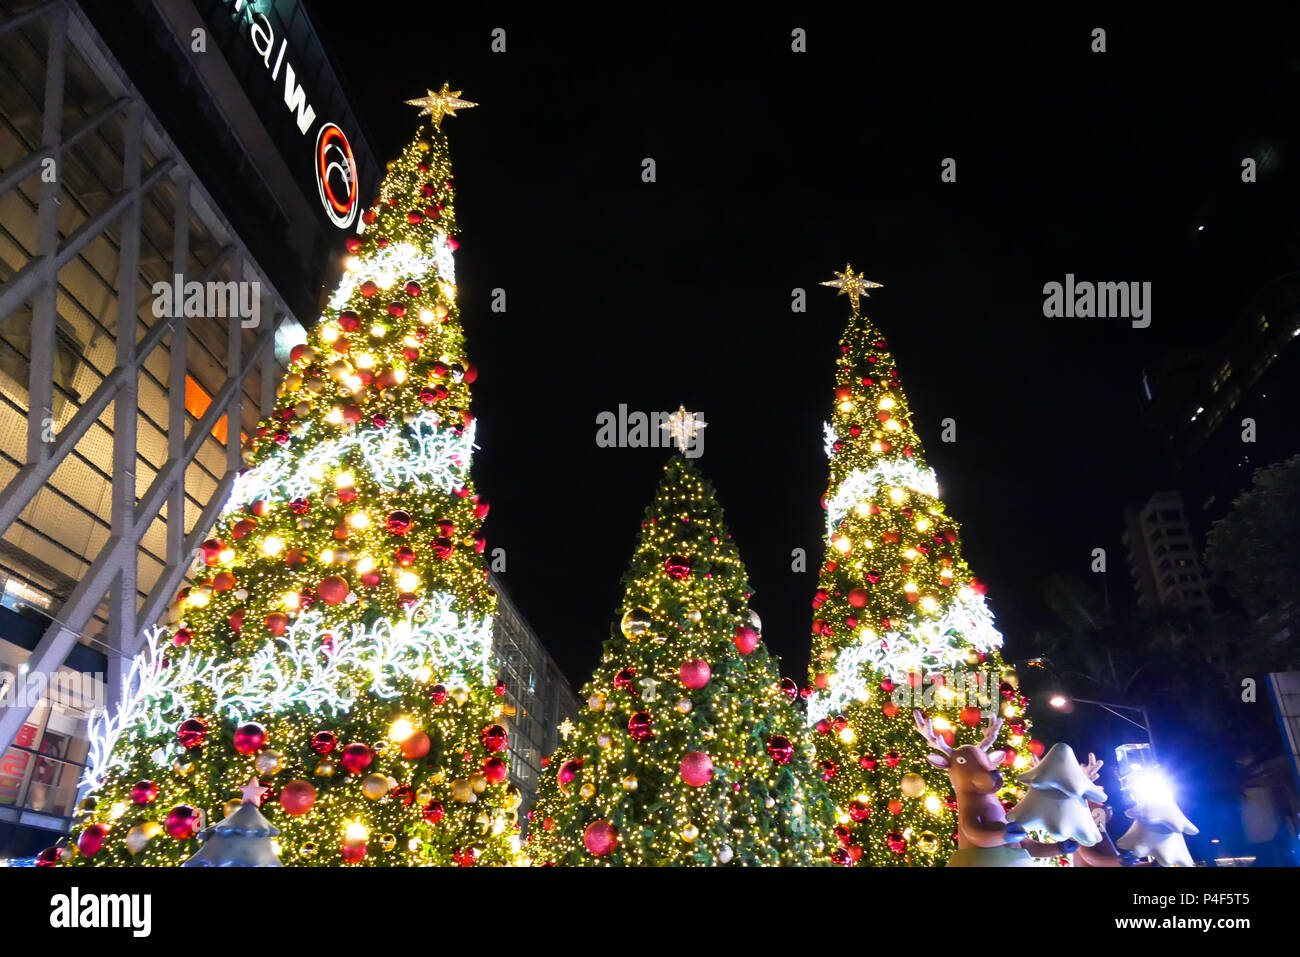 bangkok thailand november 21 2017 merry christmas and happy new year 2018 event is showing a centralworld the popular and large shopping mall in